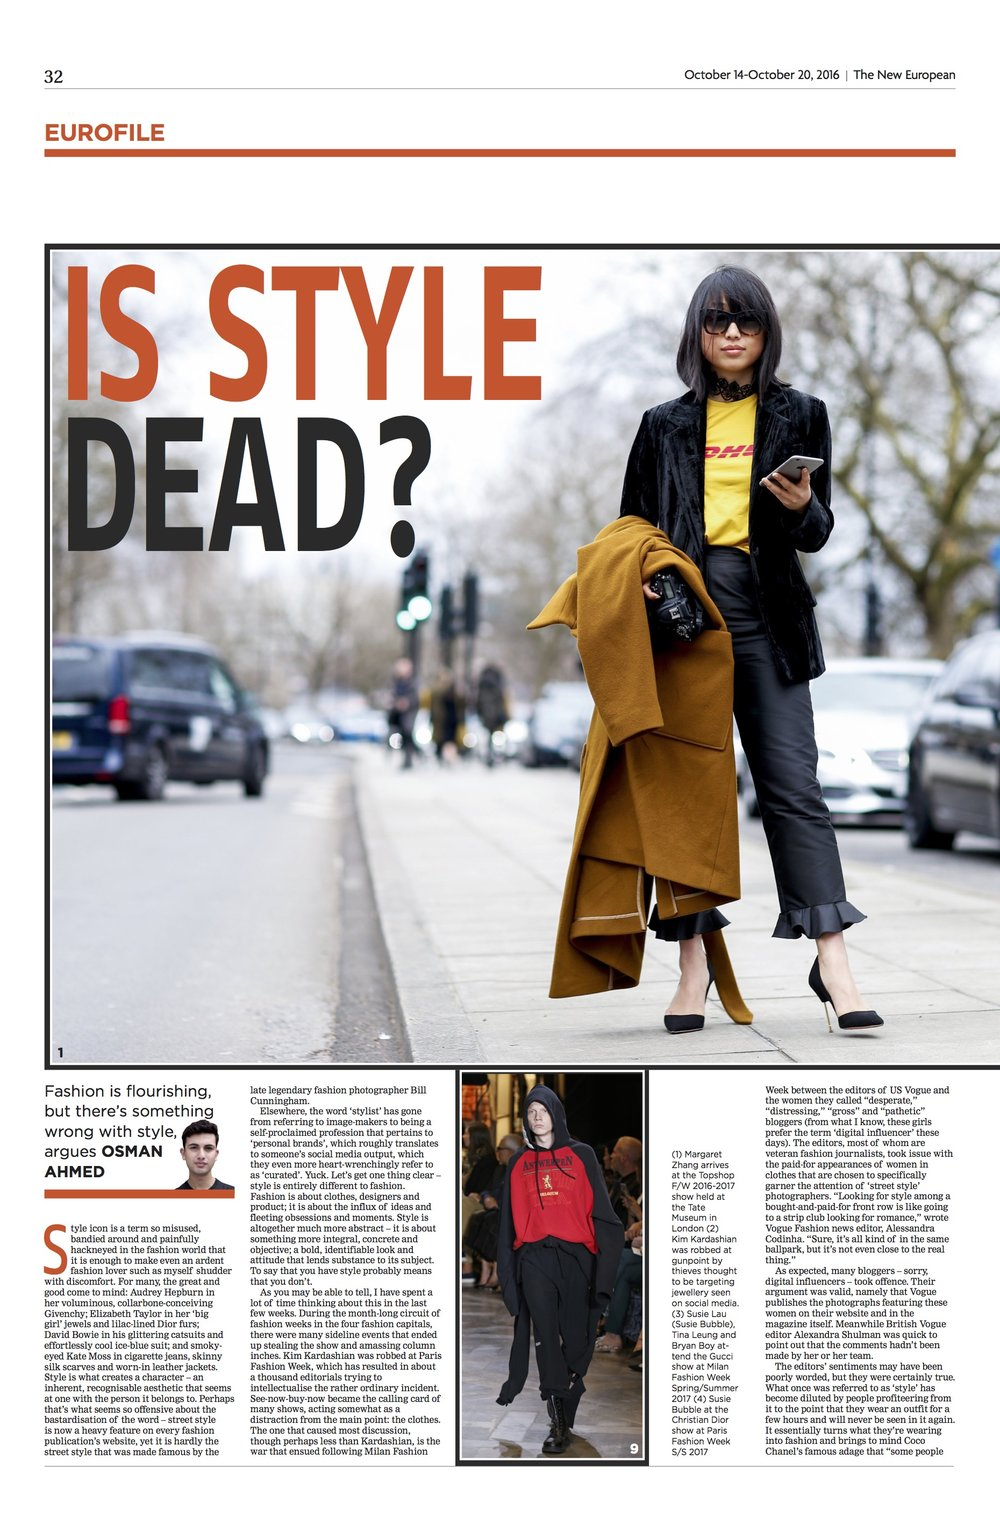 IS STYLE DEAD?